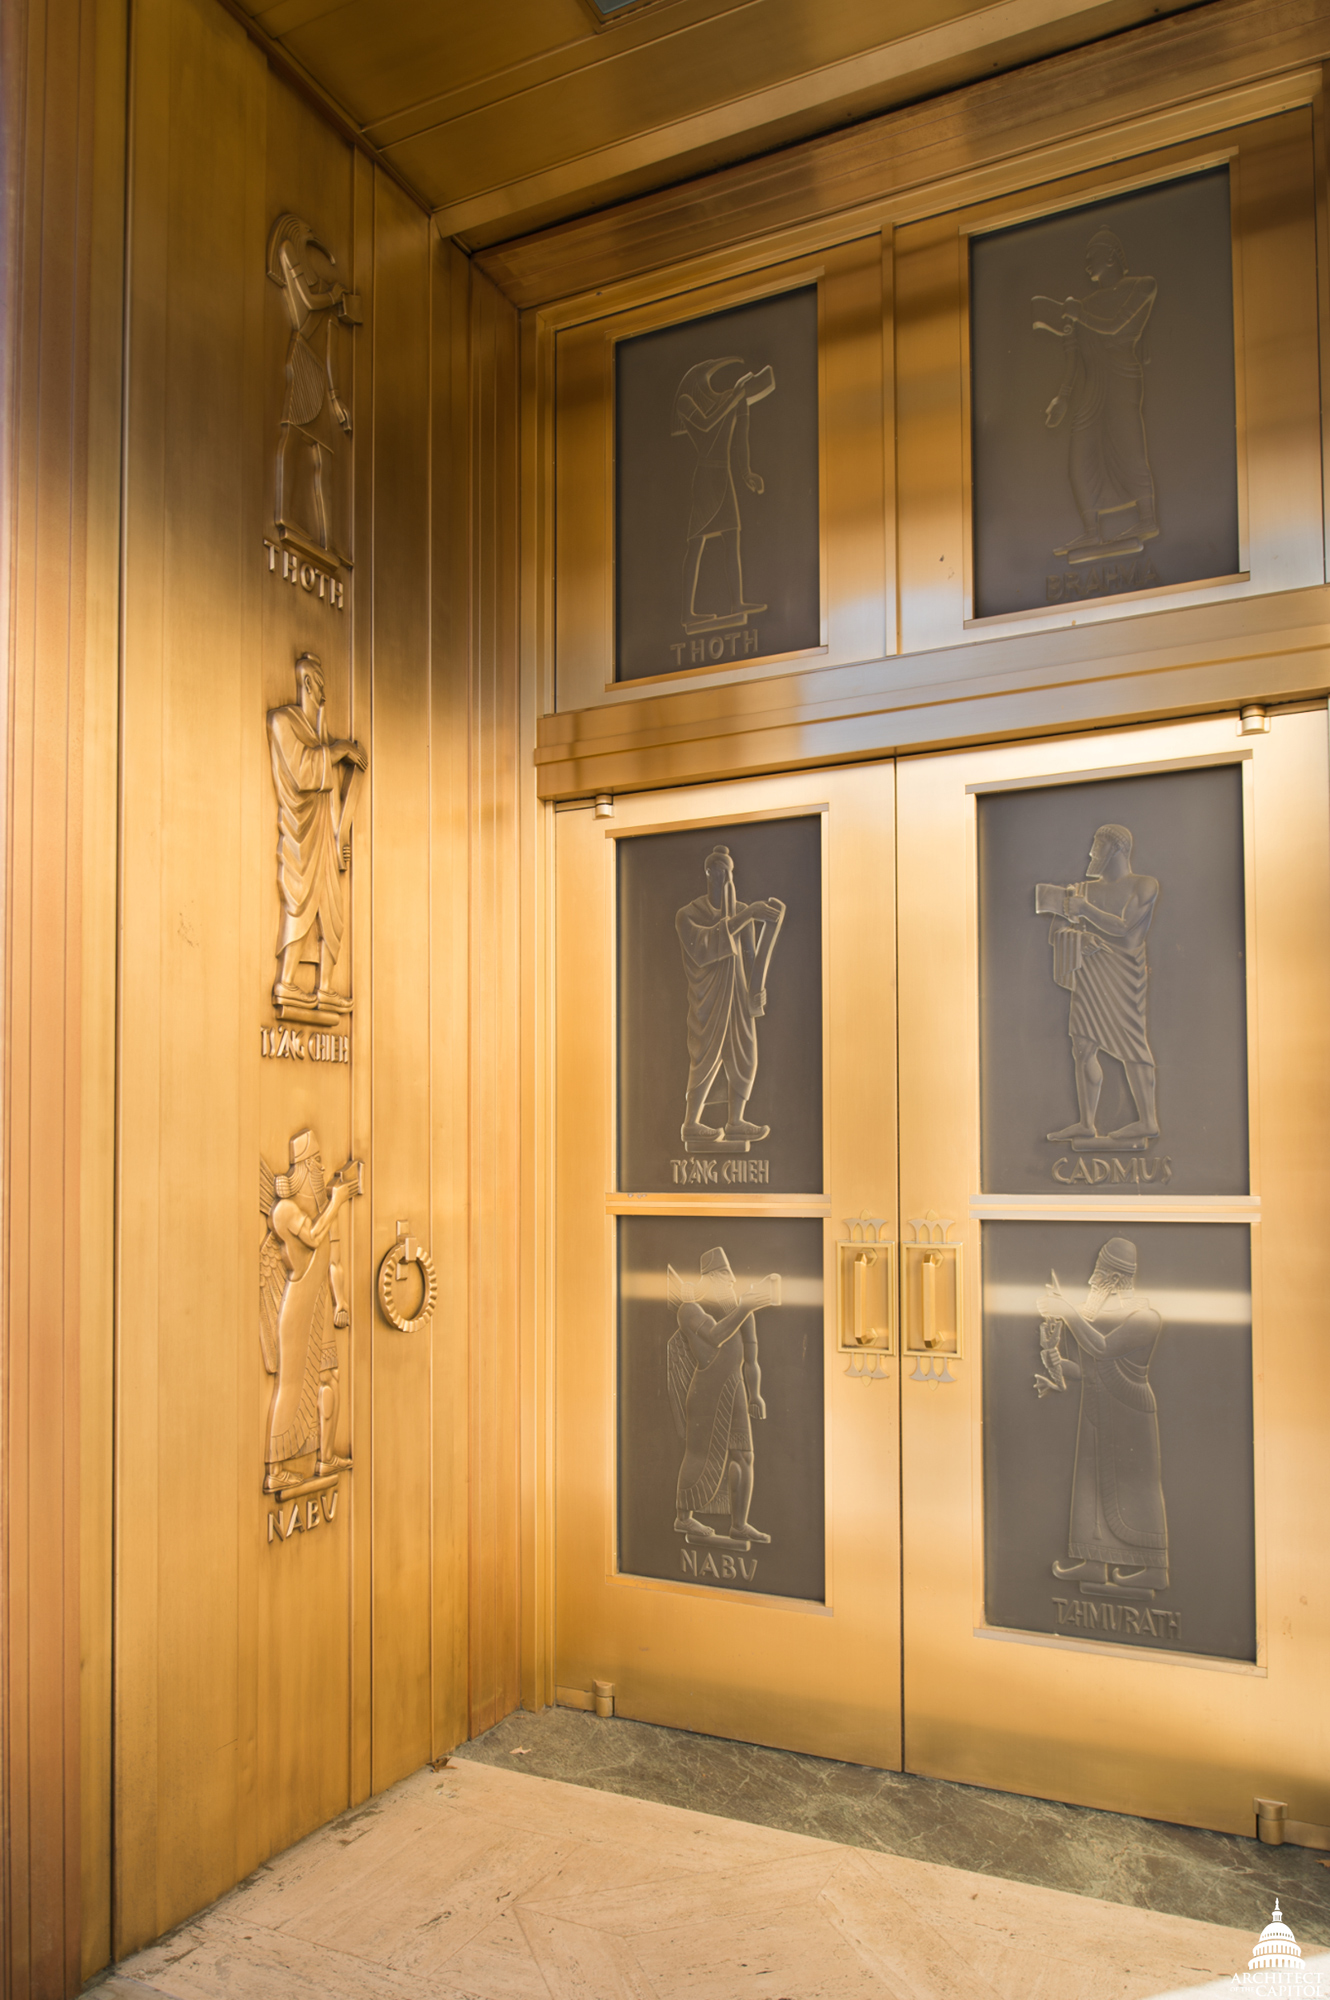 The bronze and glass doors of the John Adams Building.